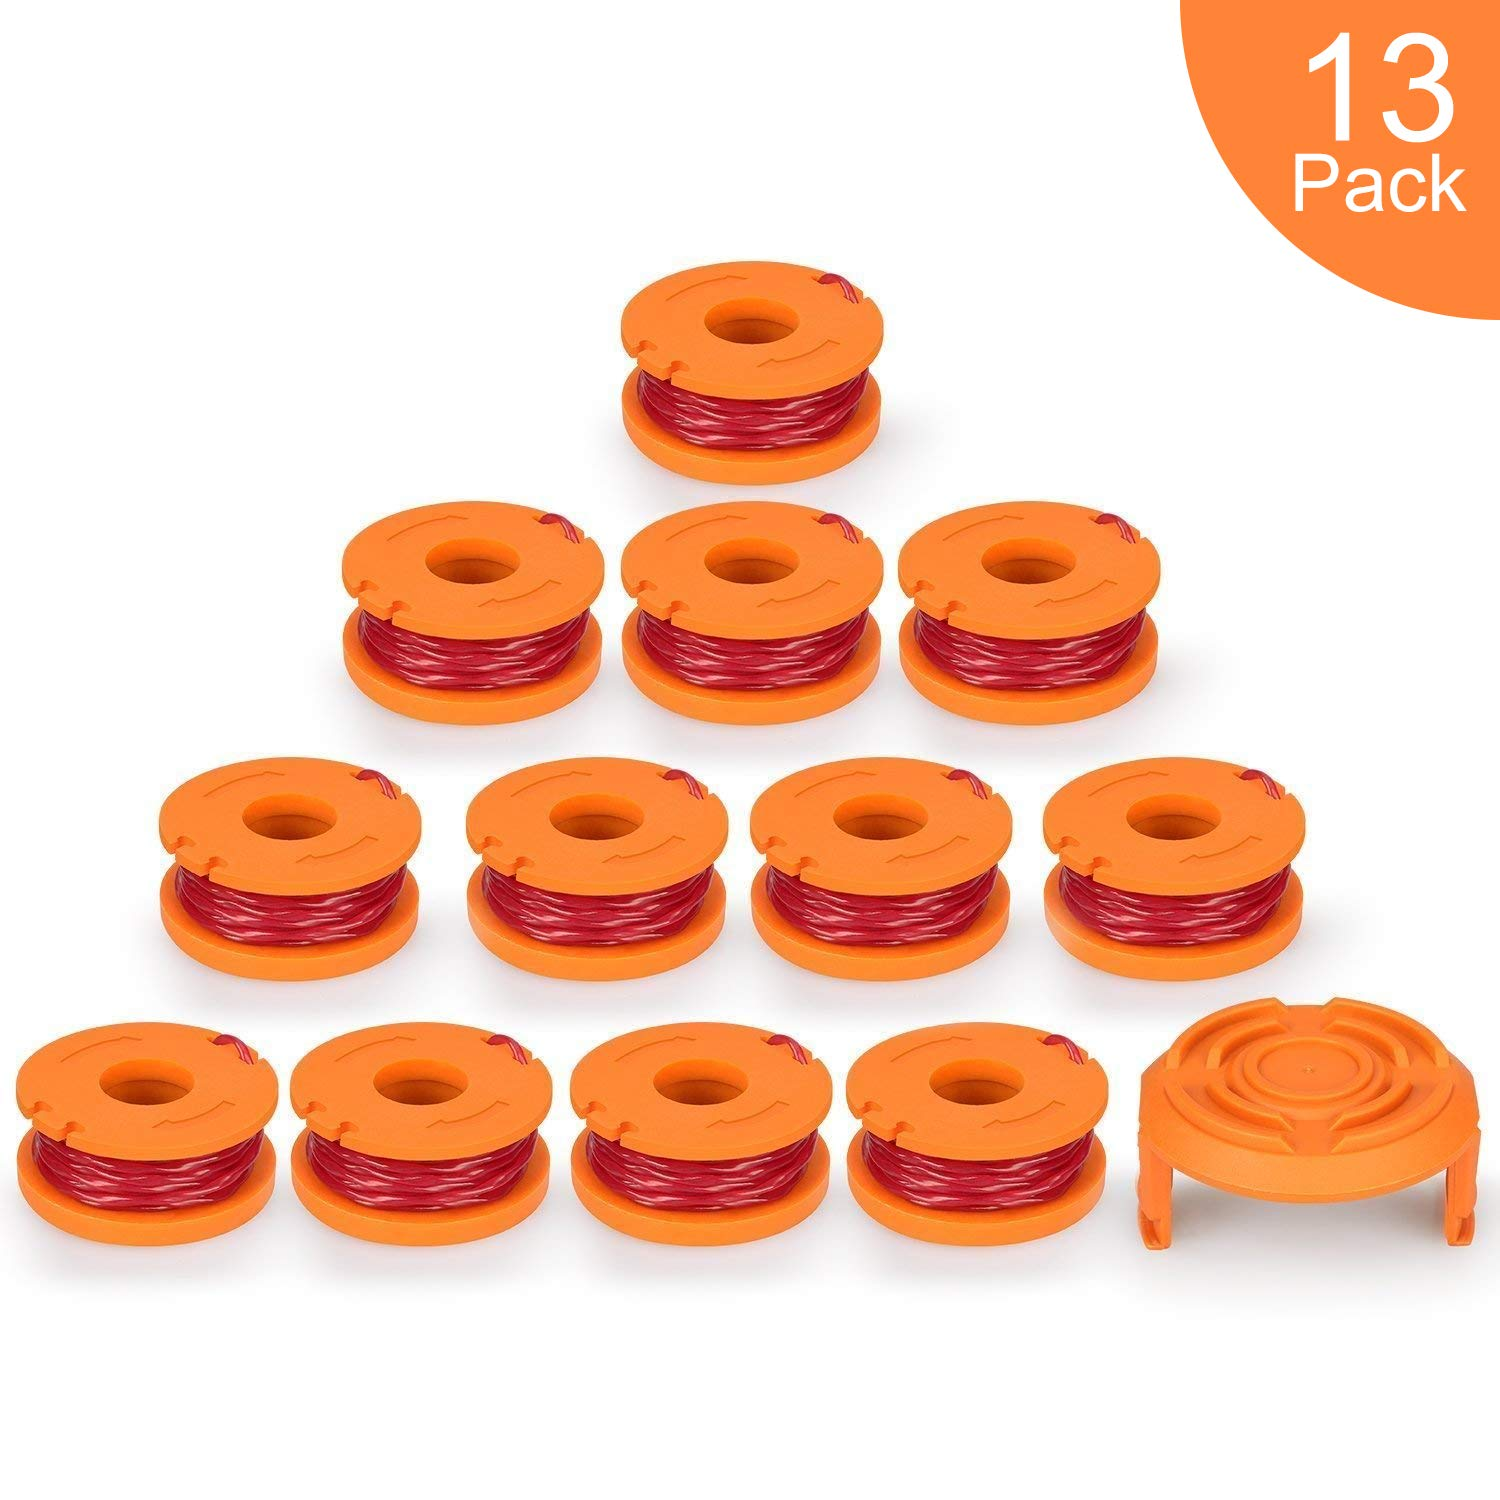 SUERW Line String Trimmer Replacement Spool, 10ft 0.065'' Replacement Autofeed Spool for Worx String Trimmer [12 Replacement Line Spool, 1 Trimmer Cap] (10 ft/Packs of 13) by SUERW